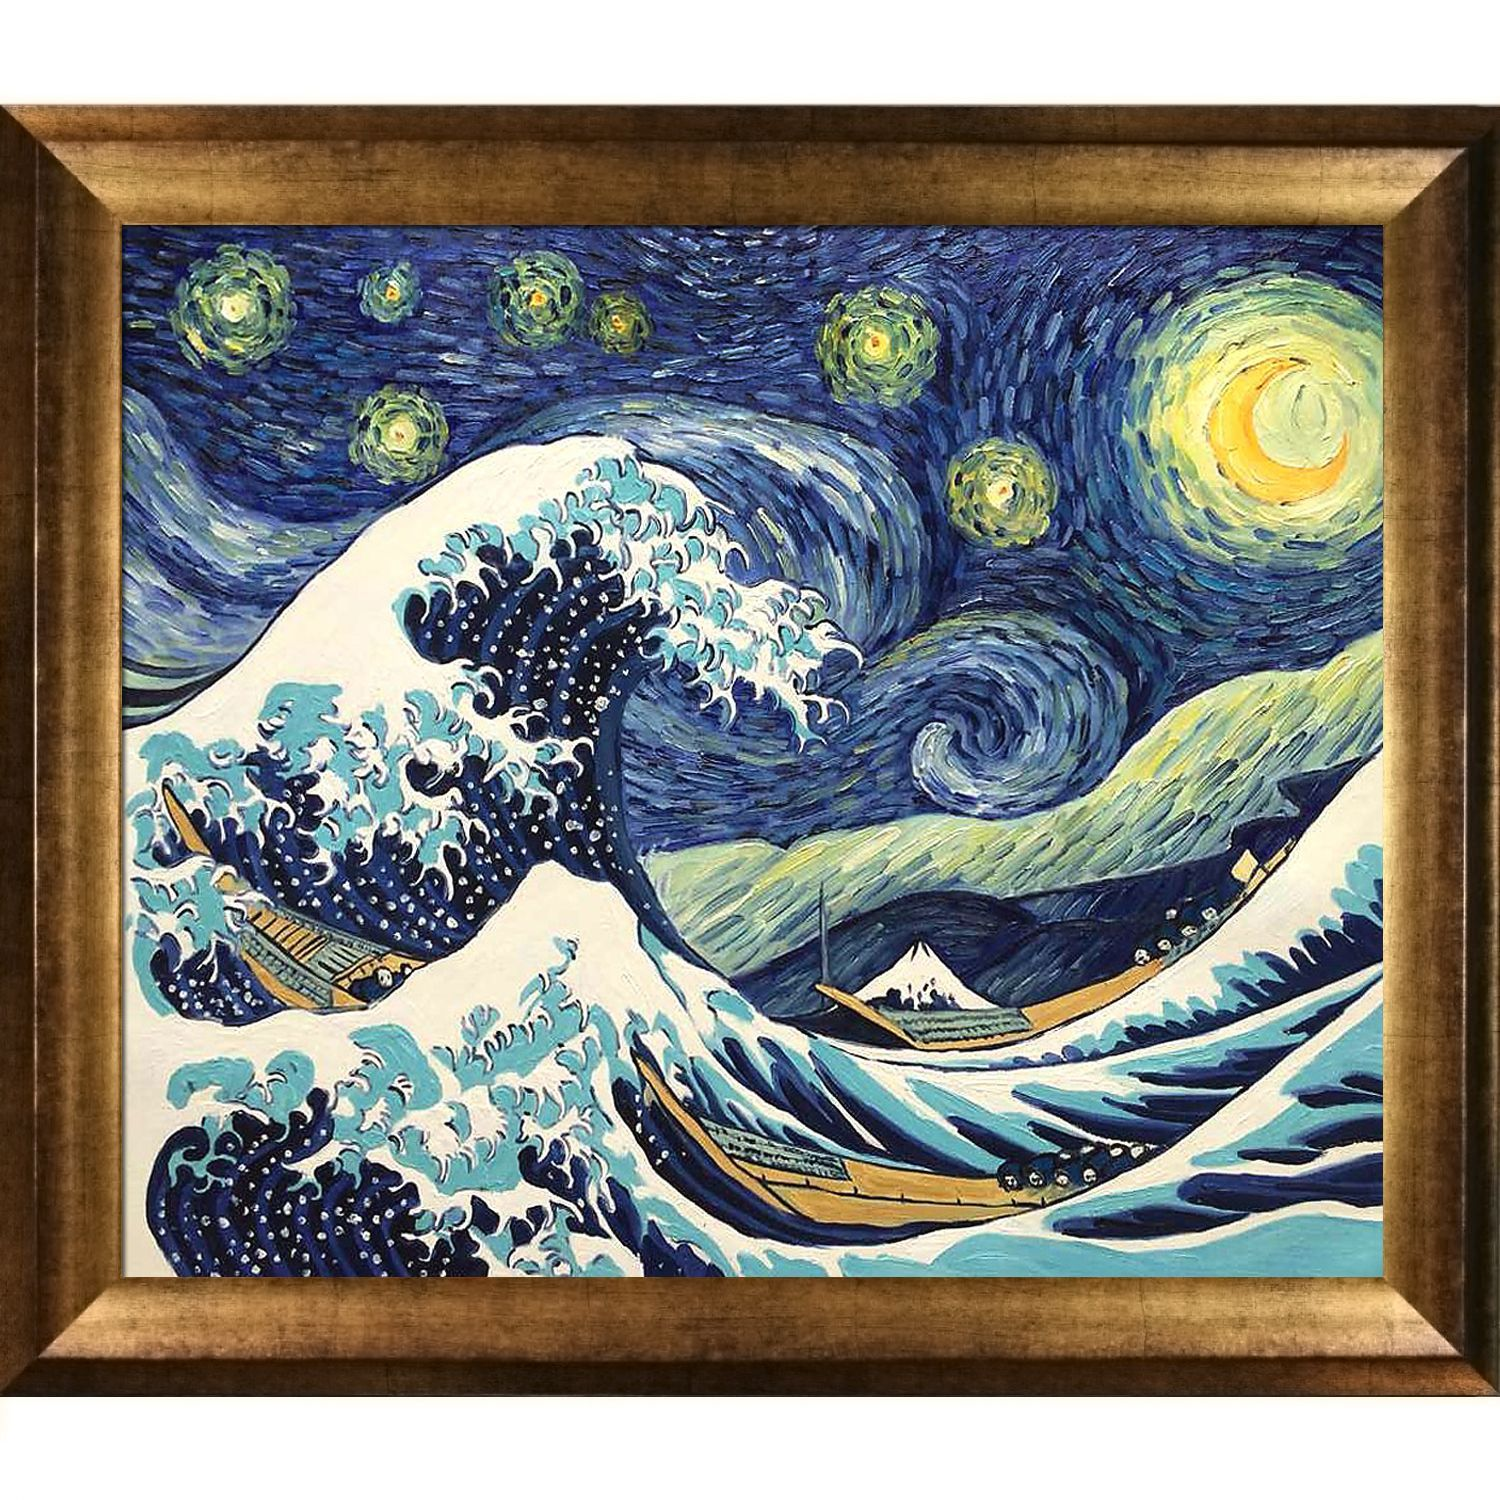 Starry Night Vincent Van Gogh Giclee Fine Art Print Reproduction Large Canvas